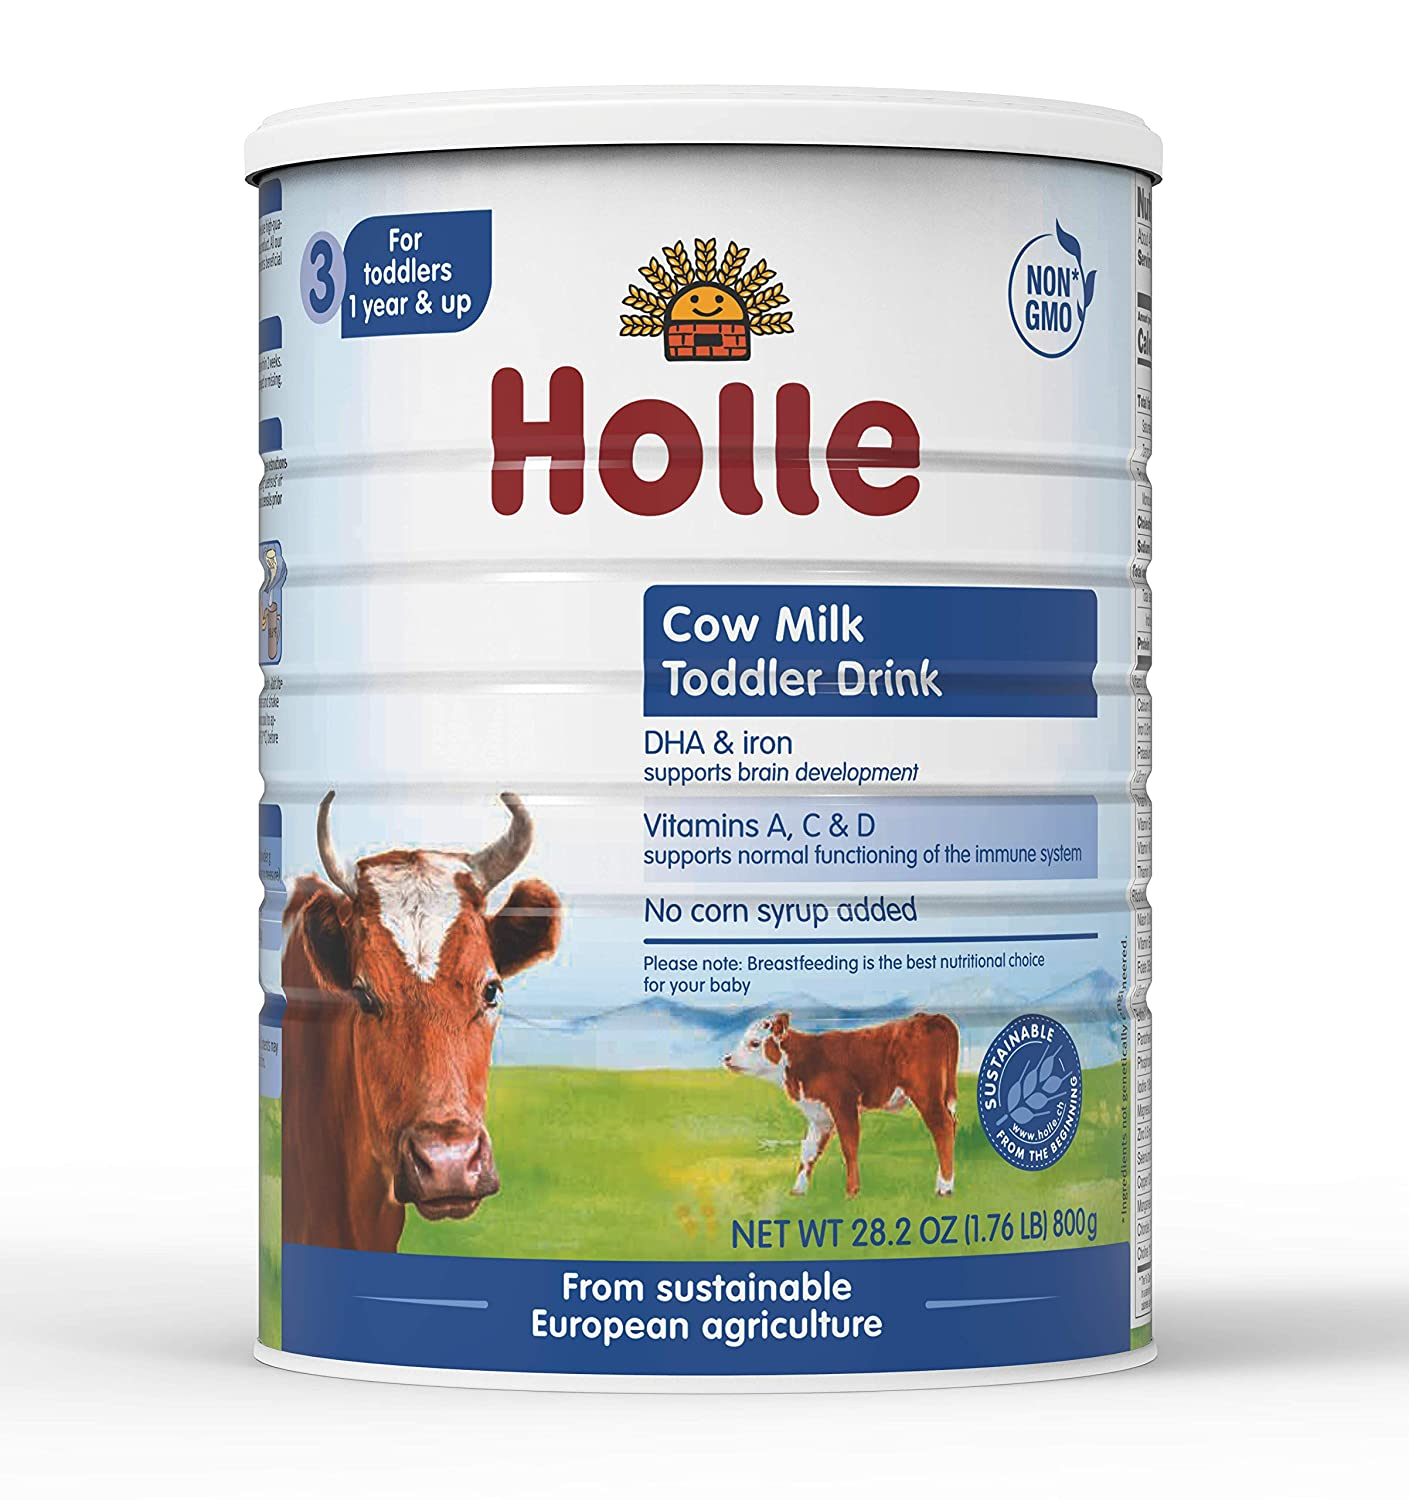 Holle Non-GMO, European Cow Milk Toddler Drink with DHA for Healthy Brain Development 1 Year & Up